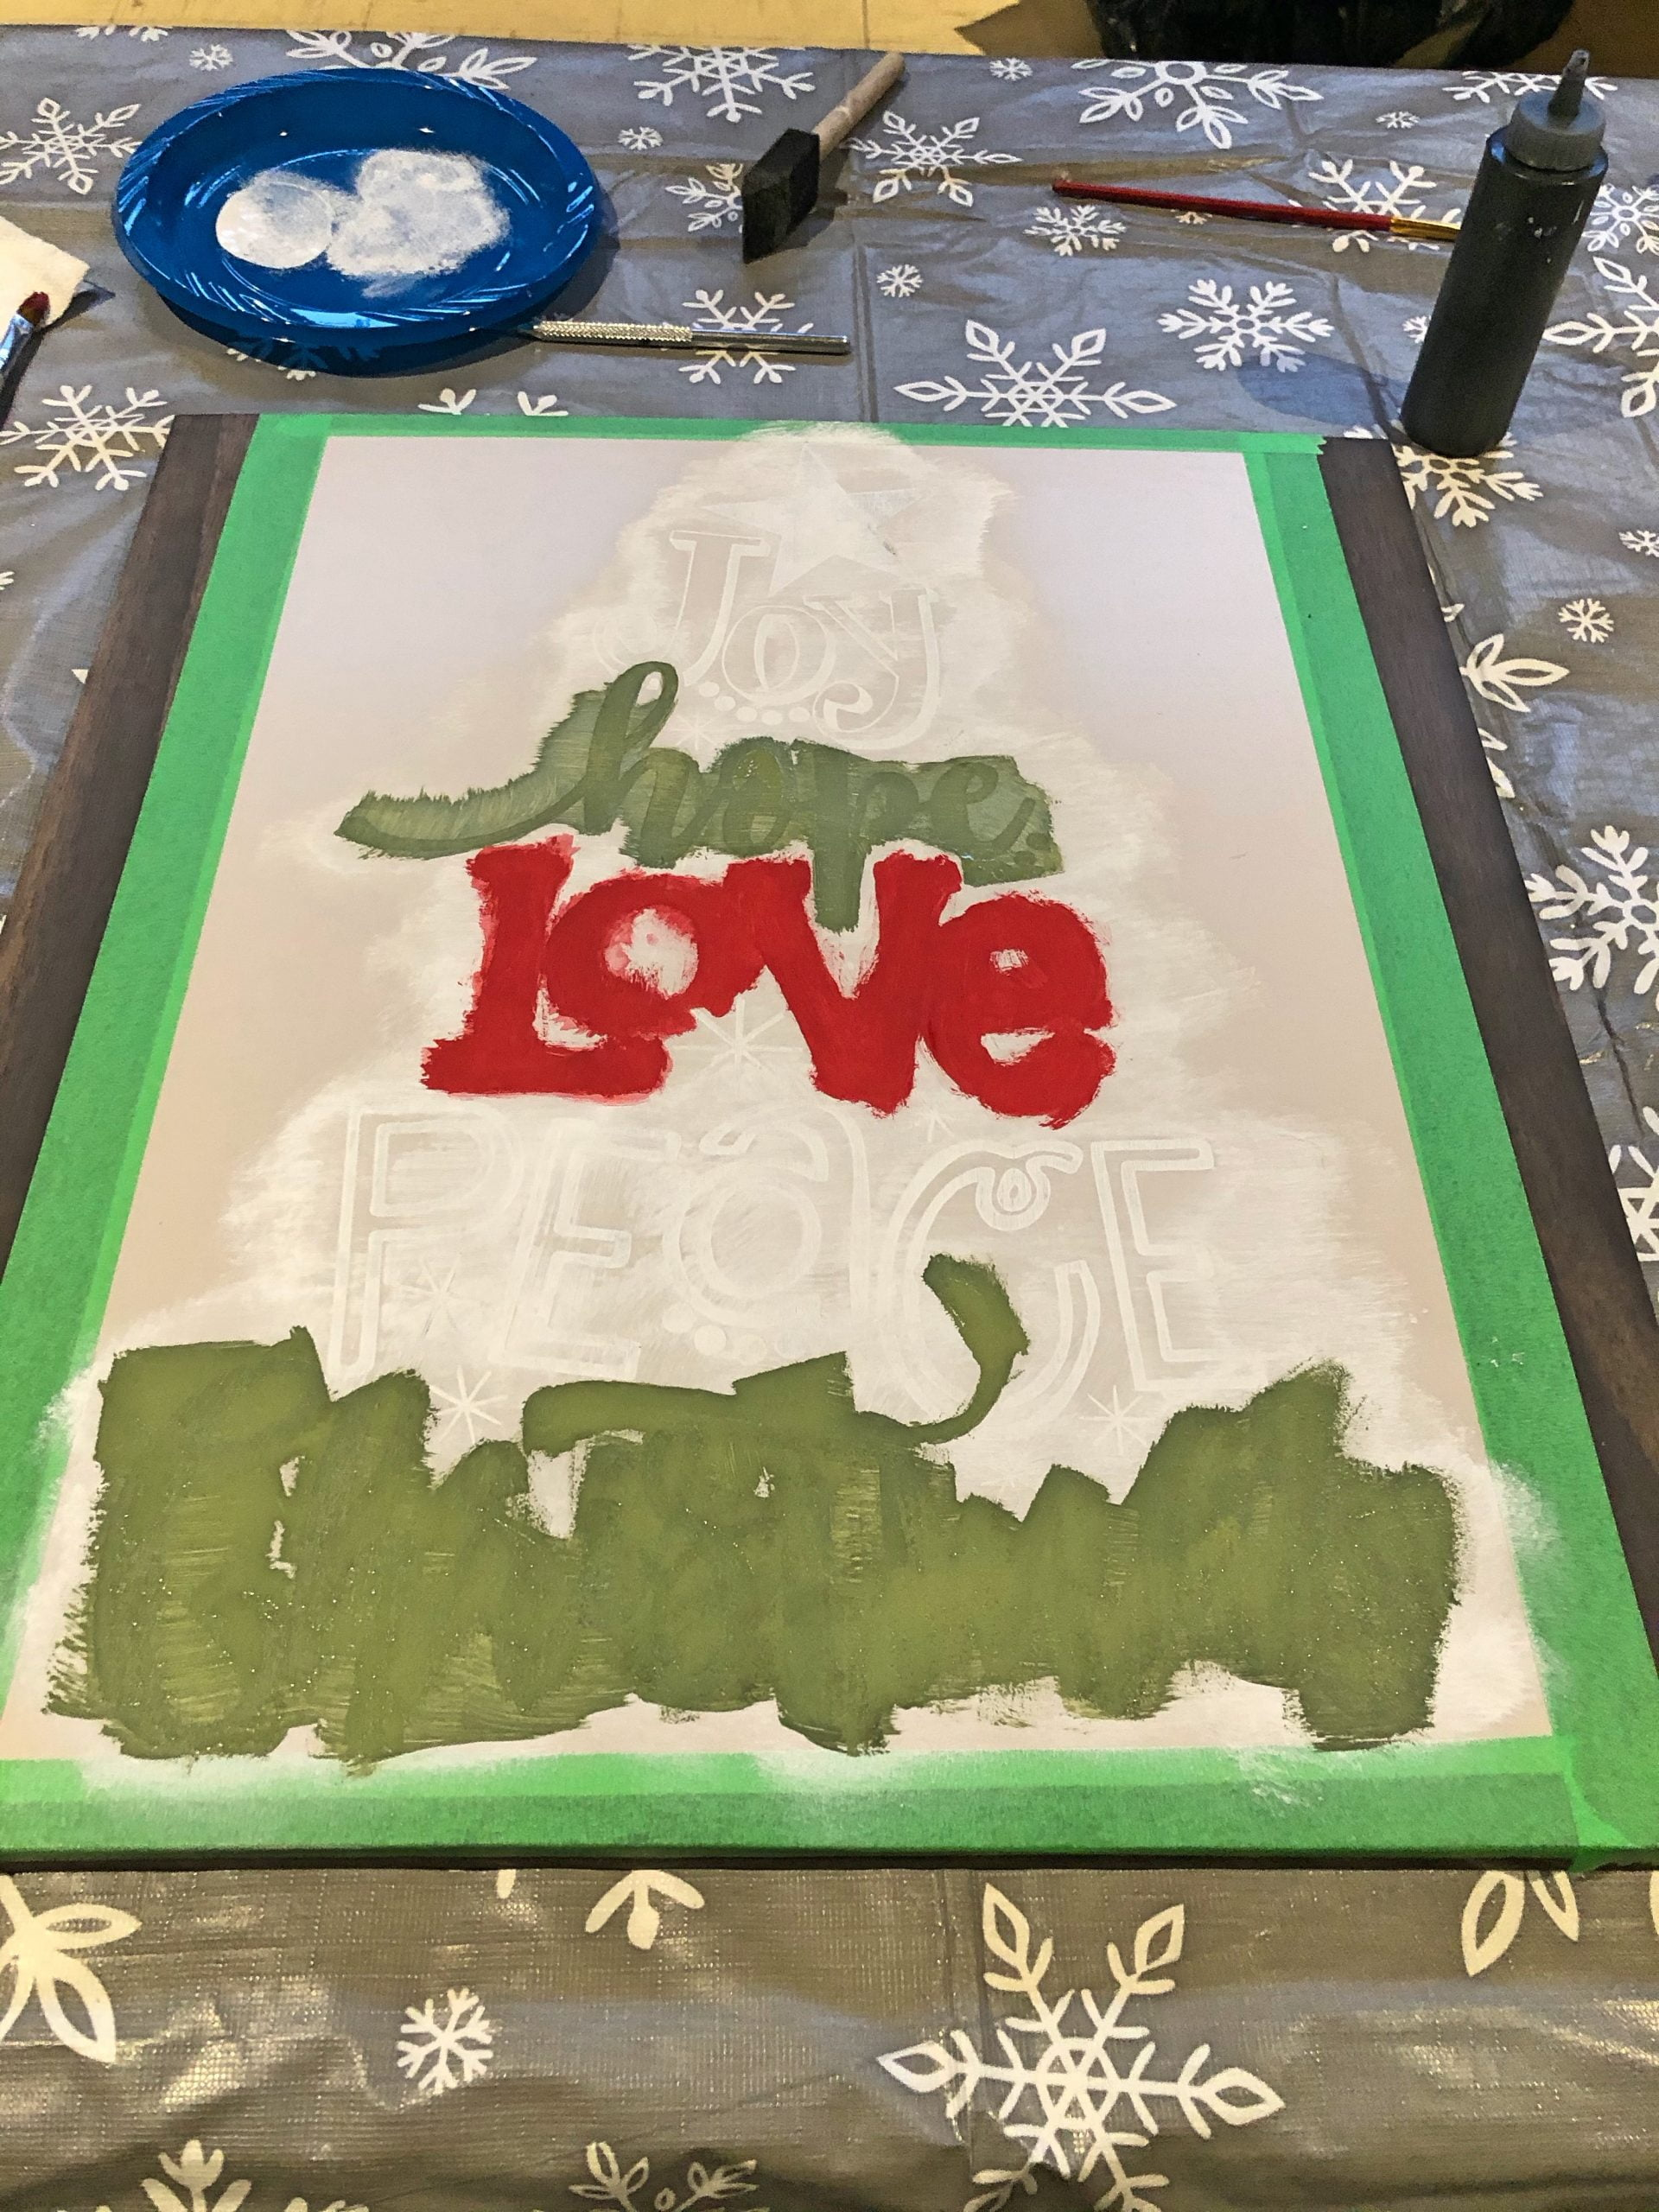 Christmas Sign Painting - Mid-Painting